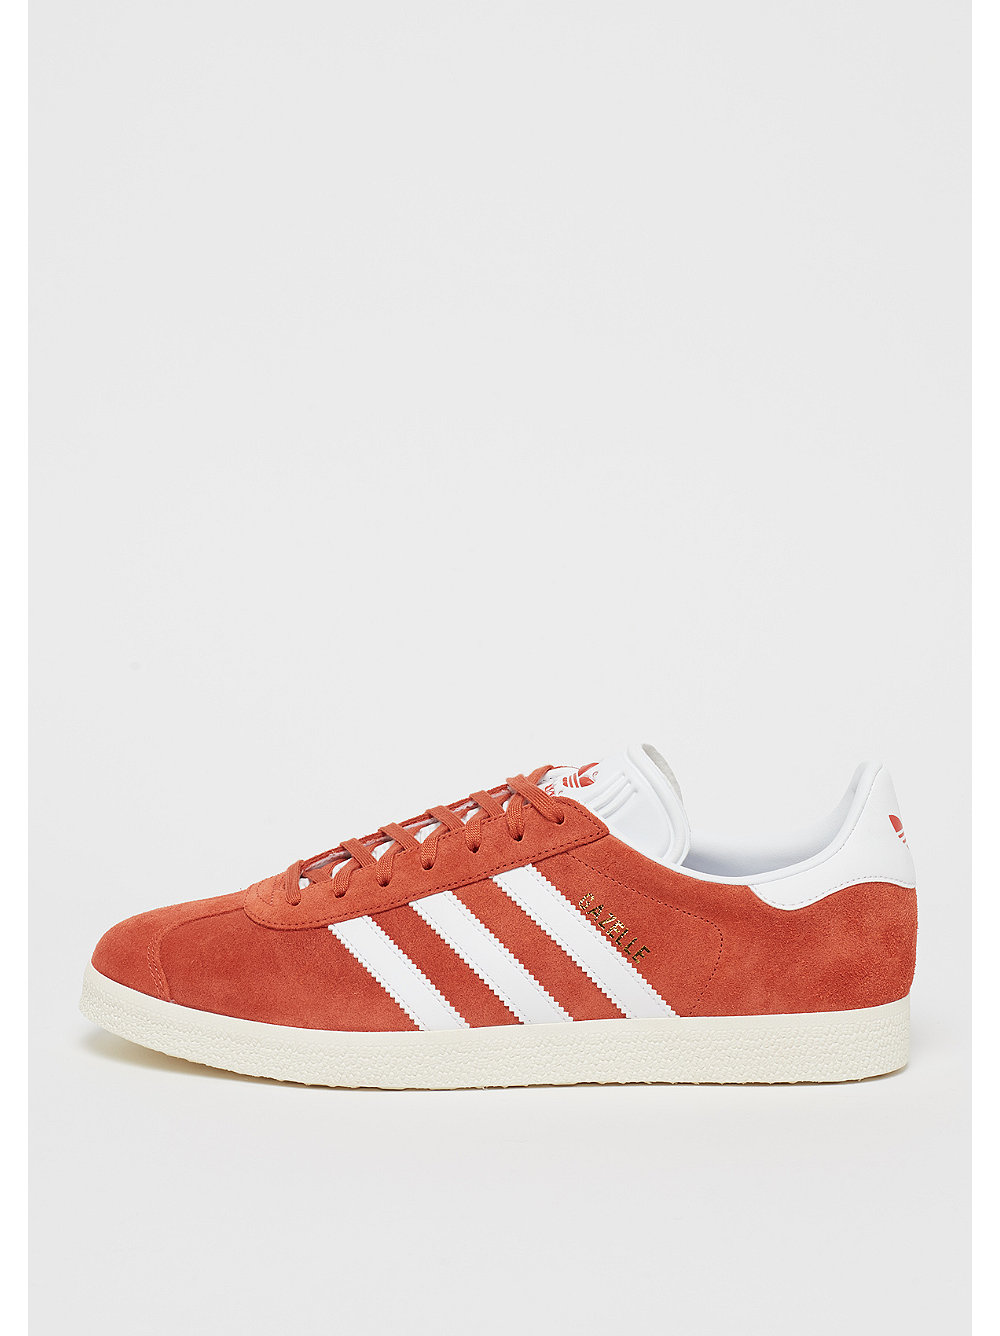 adidas gazelle herren orange